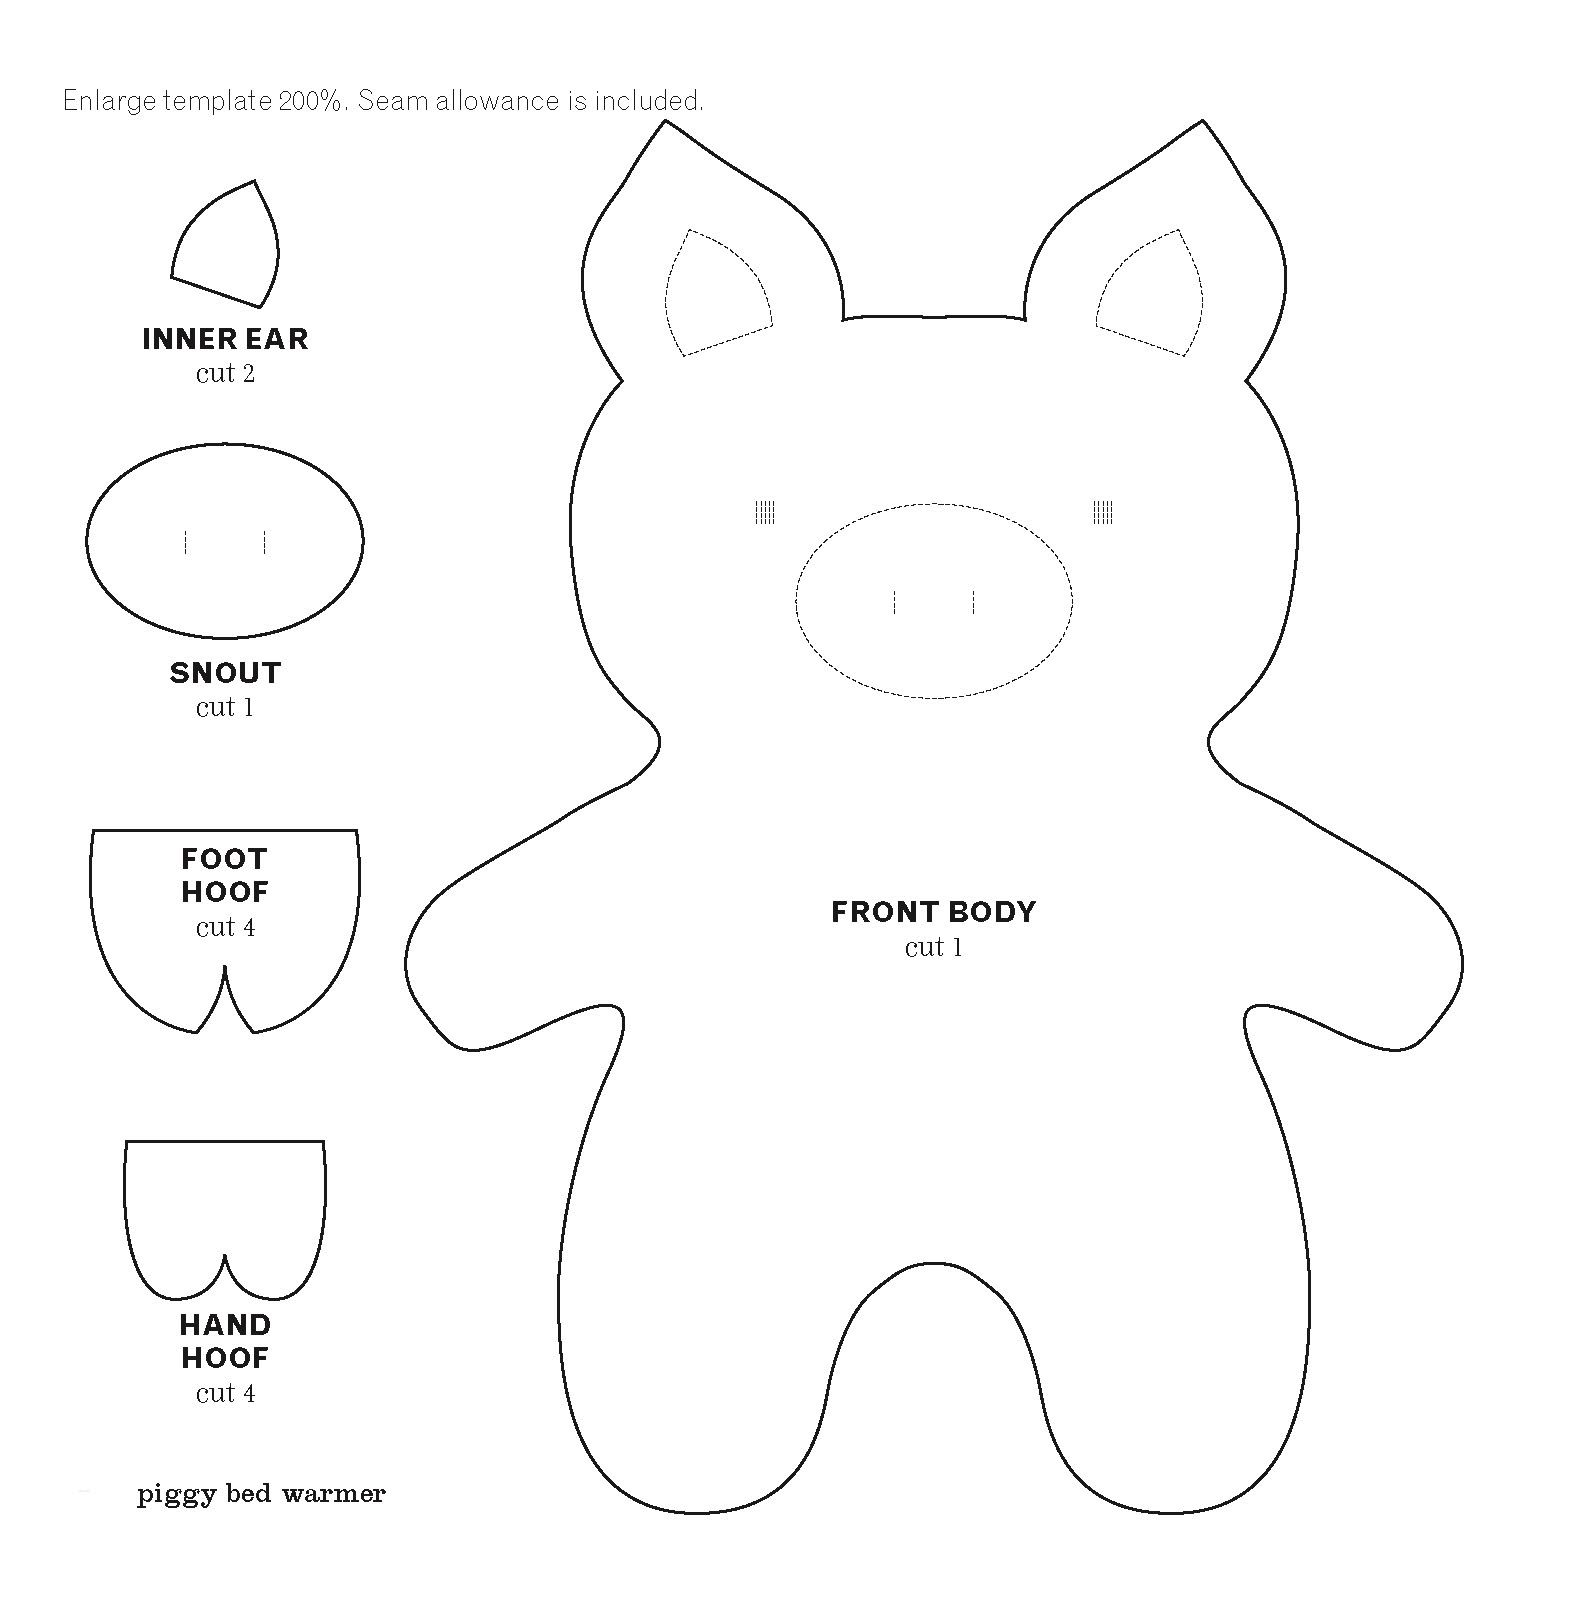 Pig cut out template215773g 15861603 felt pinterest pig cut out template215773g 15861603 pronofoot35fo Images